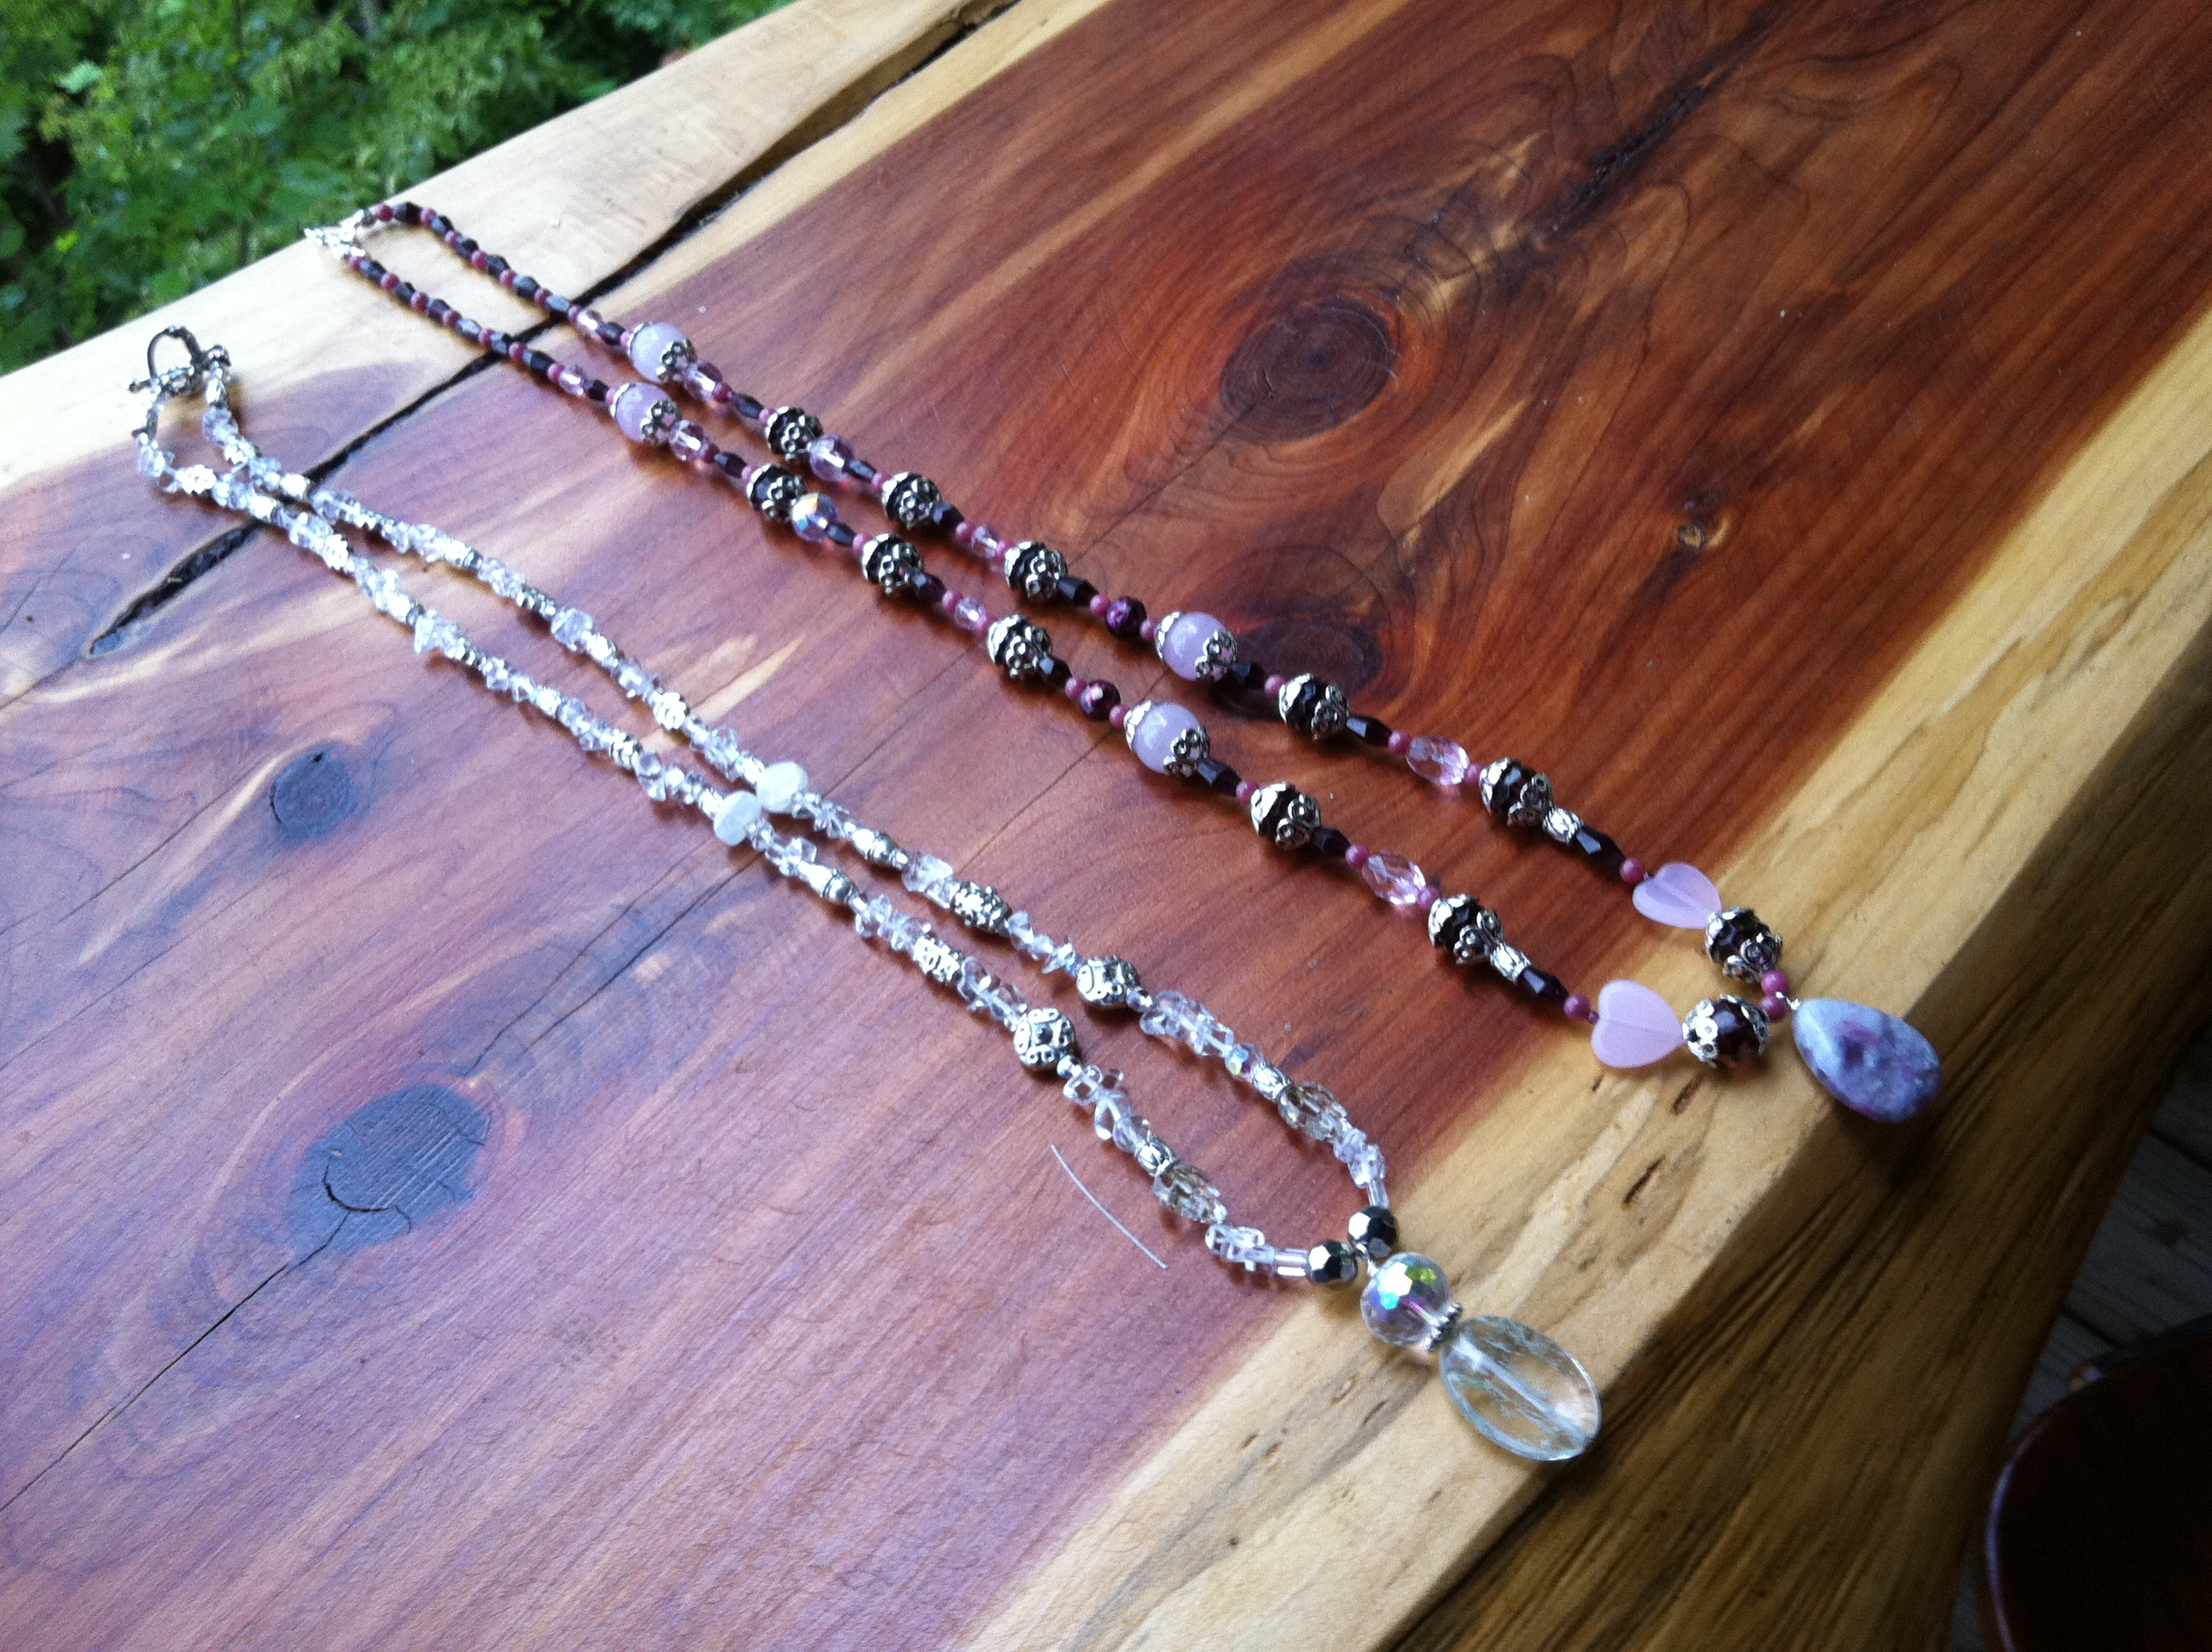 Gemstone Necklaces I Made For A Friend